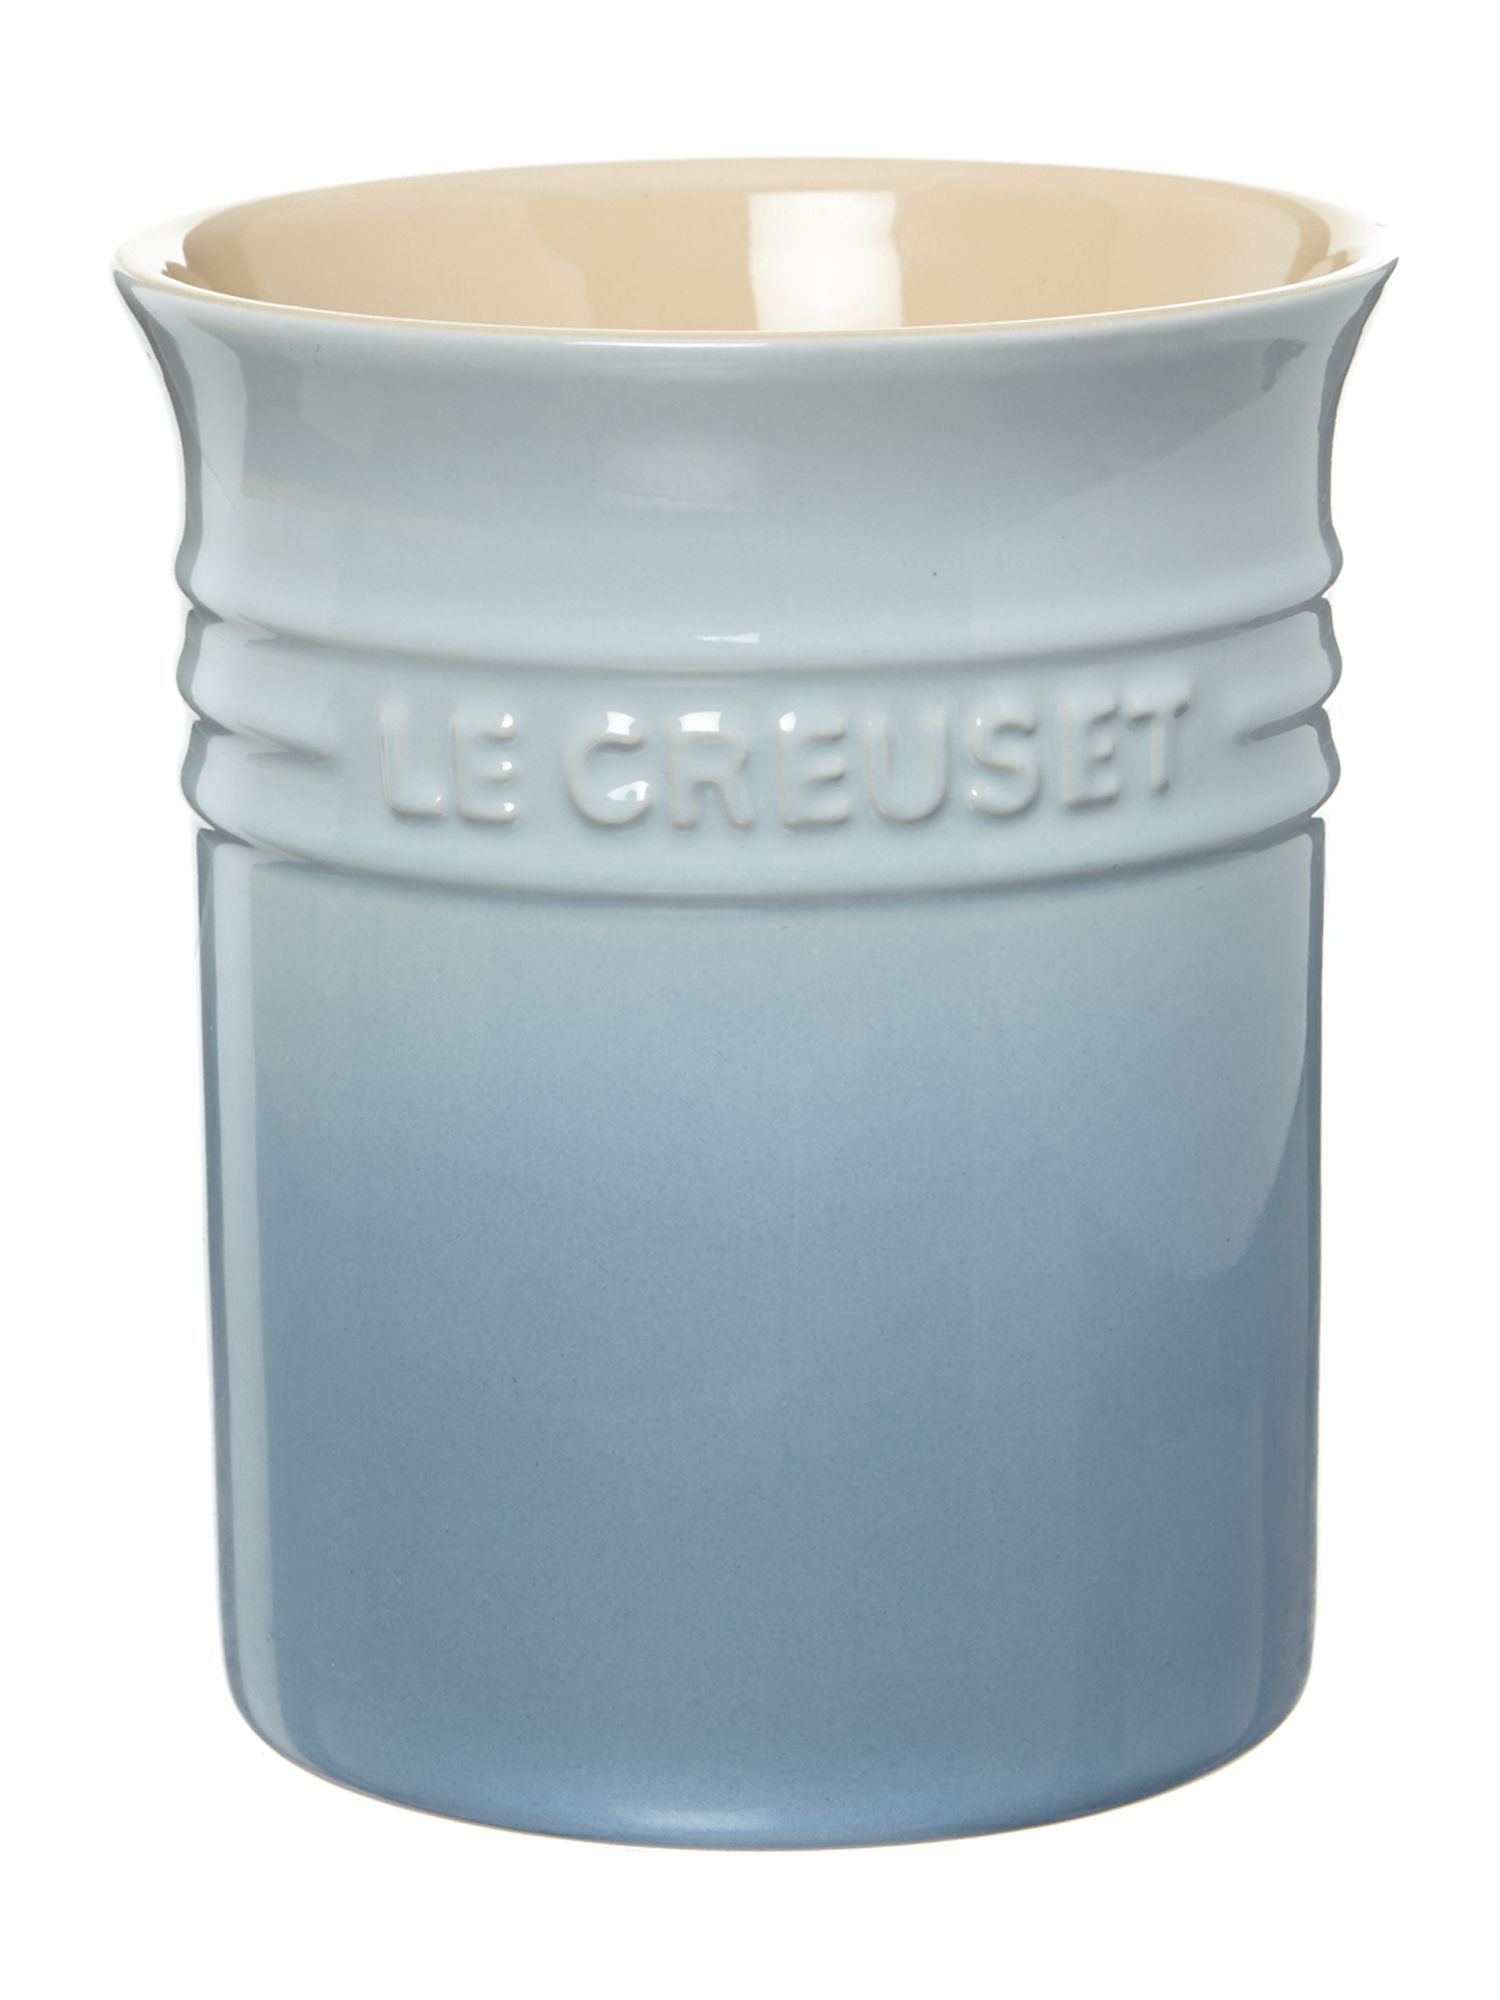 Utensil jar, Coastal Blue